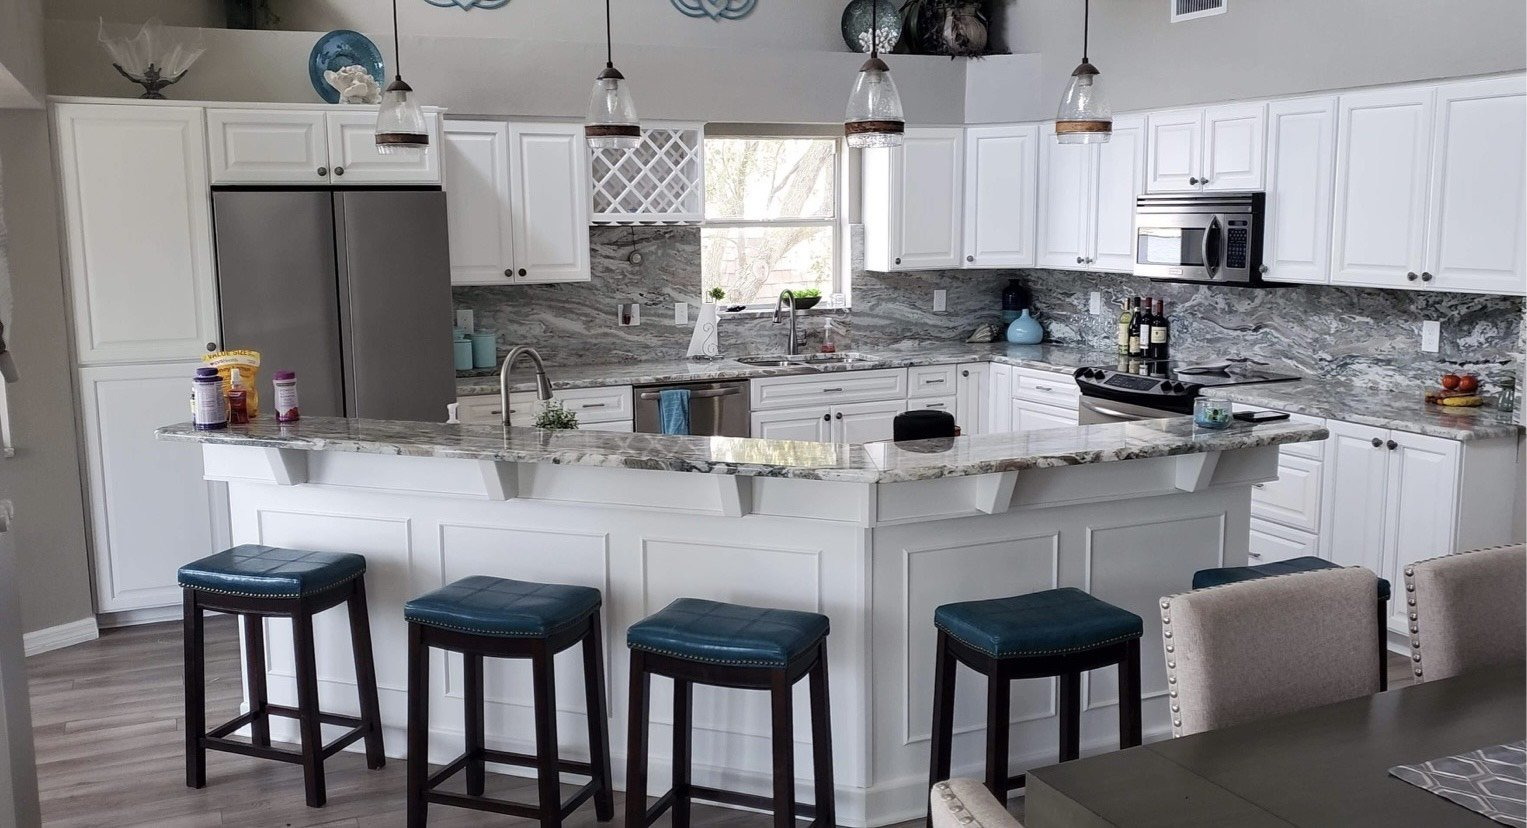 Paint finish for cabinets